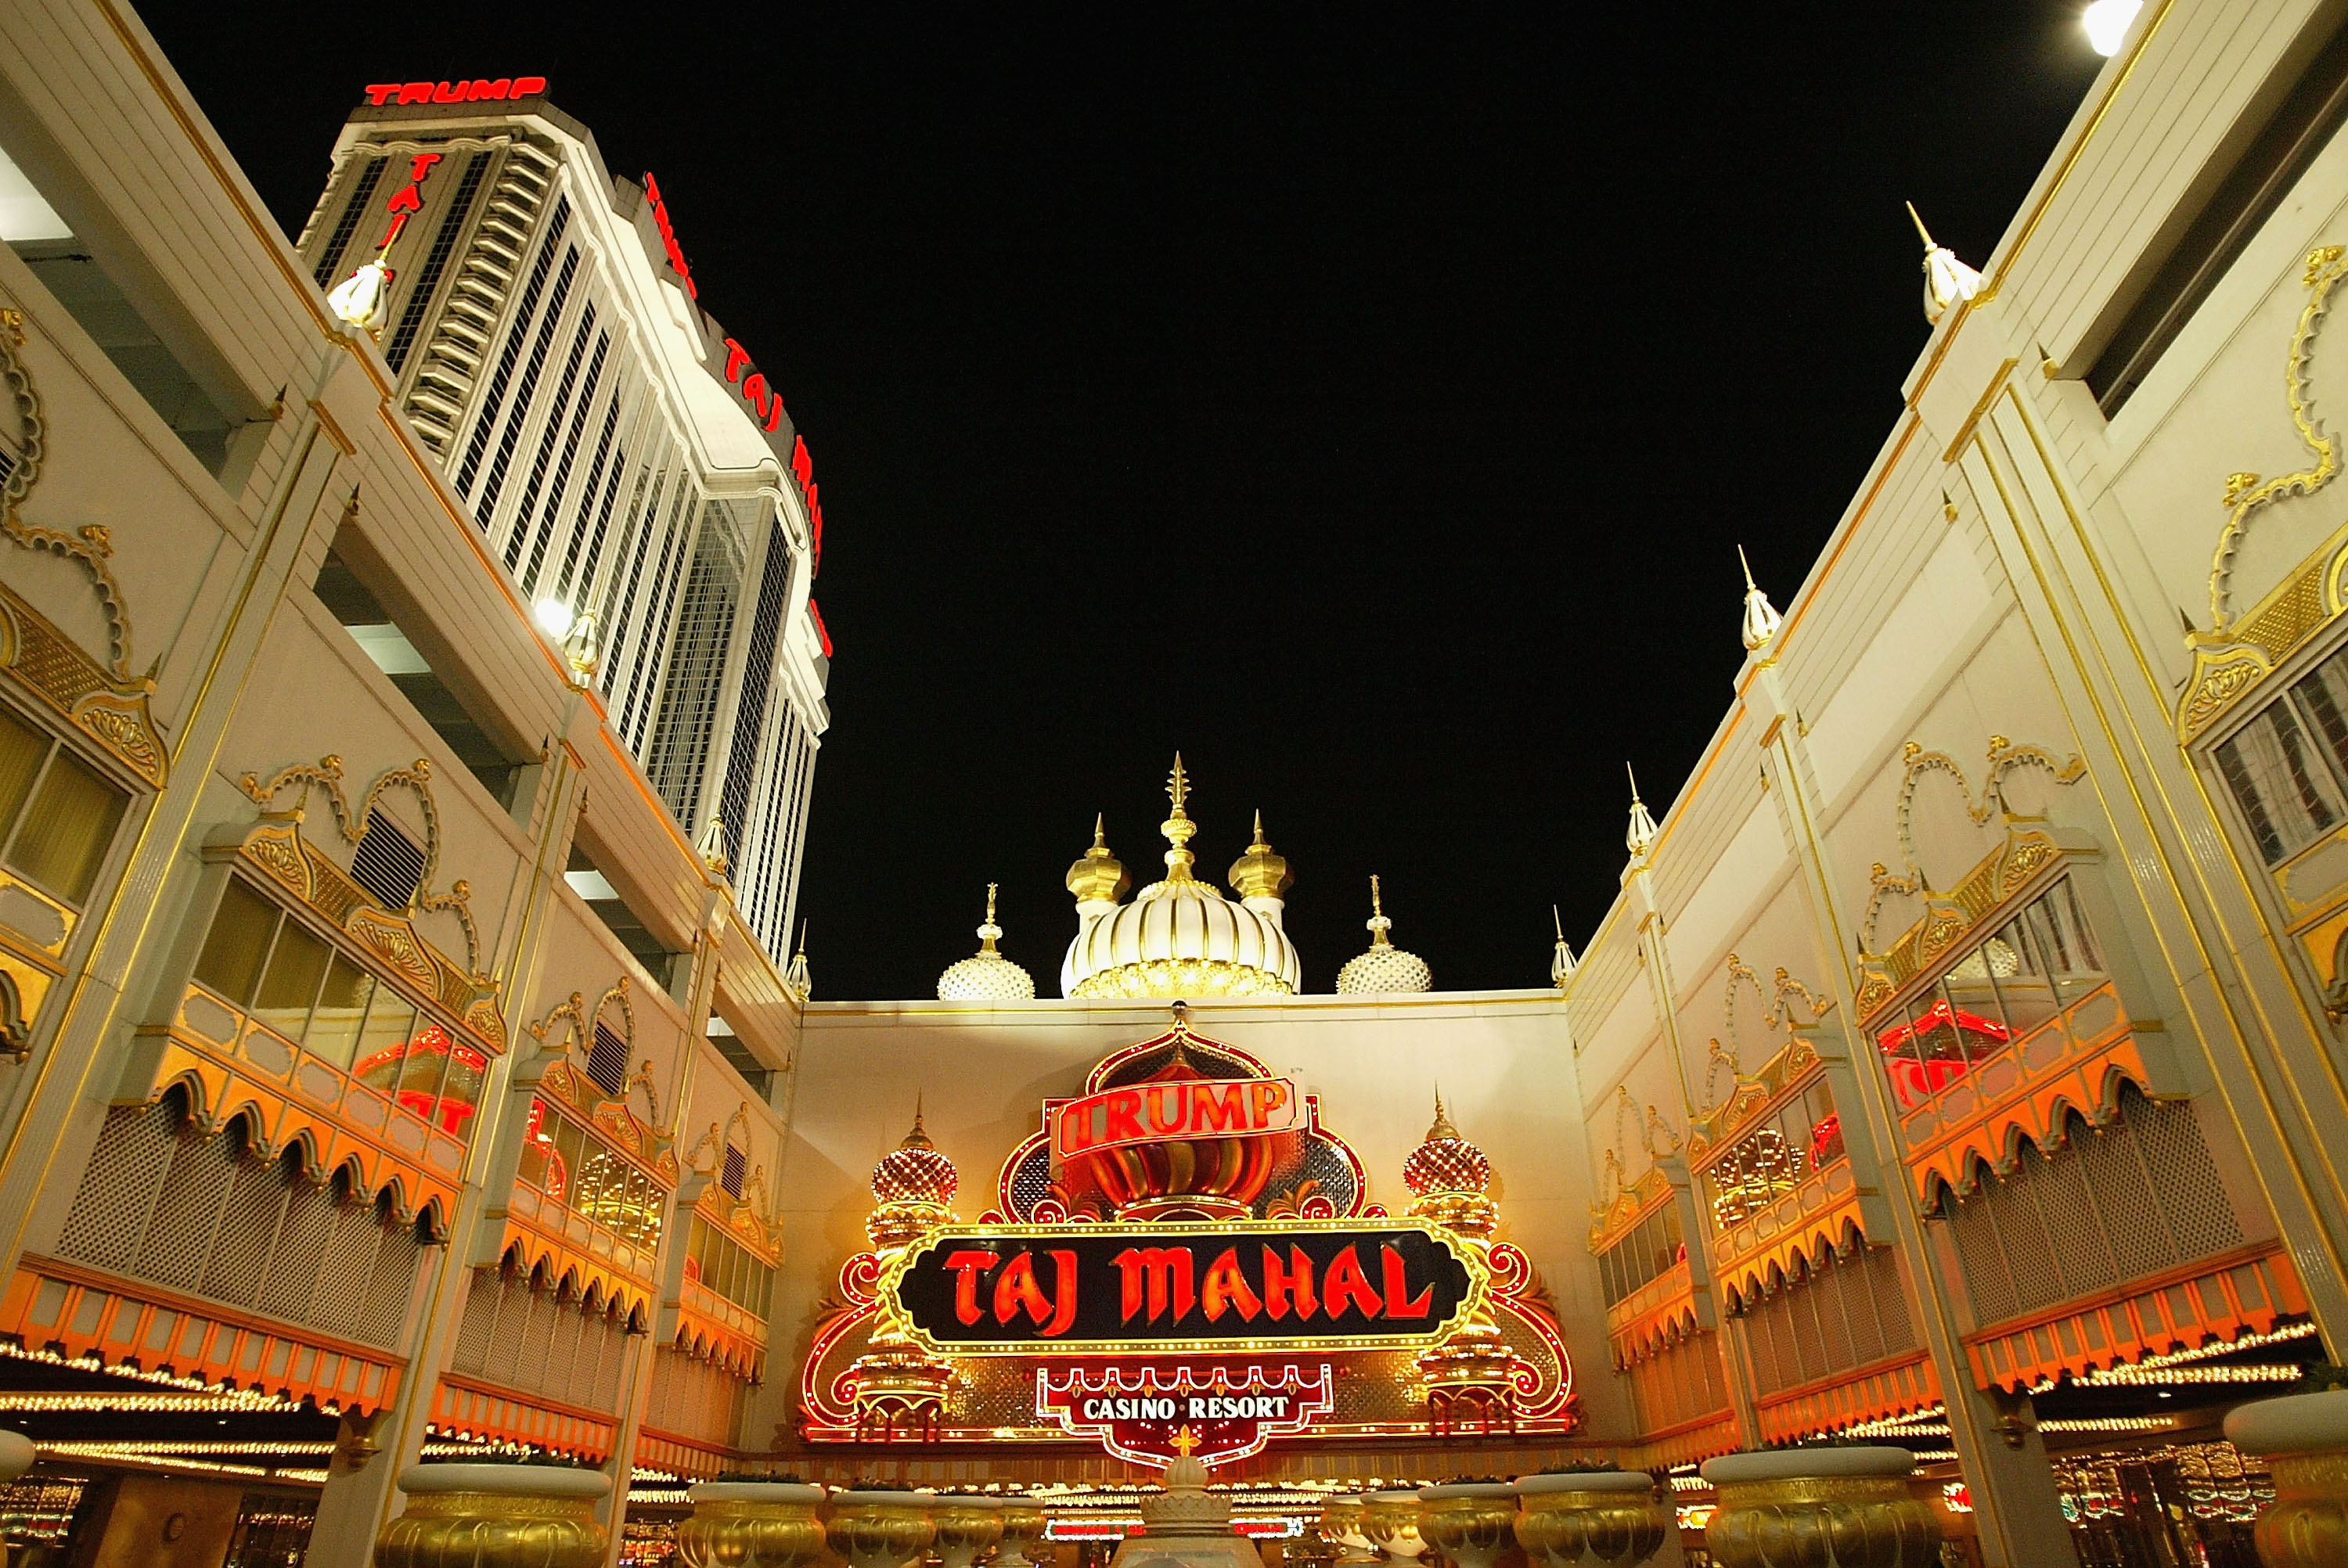 Taj Mahal Casino is closed, Atlantic City mourns